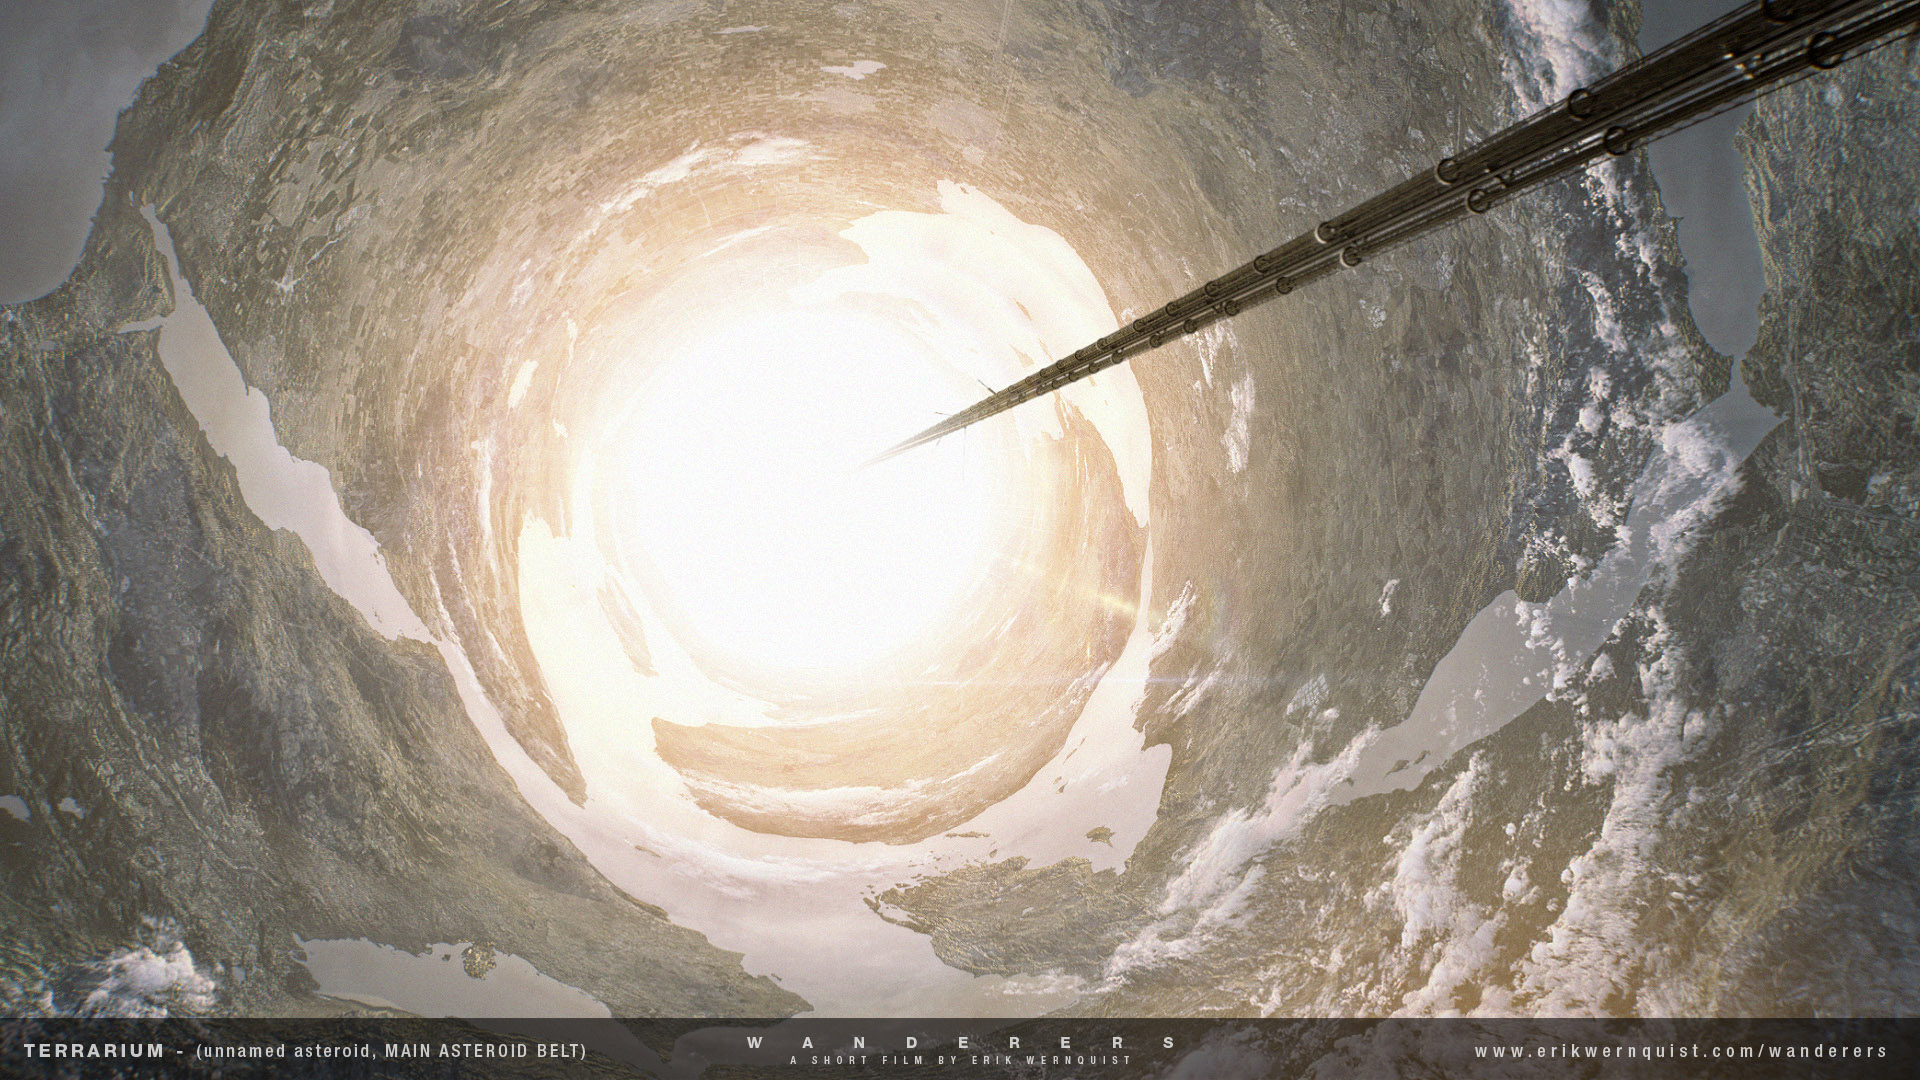 """Figure 2 - click to enlarge ( Source )  """"This shot shows the inside of the asteroid from the previous scene. Just as I wrote about that scene, this is a highly speculative vision of an impressive piece of human engineering - a concept that science fiction author Kim Stanley Robinson calls a """"terraruim"""" in his novel """"2312"""". It is also not unlike what Arthur C. Clarke described in his novel """"Rendezvous with Rama"""".  What we see here is the inside of a hollowed out asteroid, pressurized and filled with a breathable atmosphere. Like I described in the previous scene, the whole structure is put into a revolving rotation, simulating the effect of gravity toward the inside """"walls"""" of the cylinder shape we see. The structure in this scene has a diameter of about 7 kilometers and revolves with a speed of 1 rotation every 2 minutes, simulating the effect of 1g (the gravity pull we feel on Earth) at the surface of the inside. This place is also filled with water, creating lakes and seas wrapped along with the landscape. An artificial sun is running along a rail in the middle of the space, simulating a daylight cycle.  This scene is of course built from scratch, but I used countless satellite photos of the Earth to texture the landscape. I actually used a slightly warped world map to create the outlines between land and water, as some may notice a couple of familiar shorelines.""""\(^{[3]}\)"""